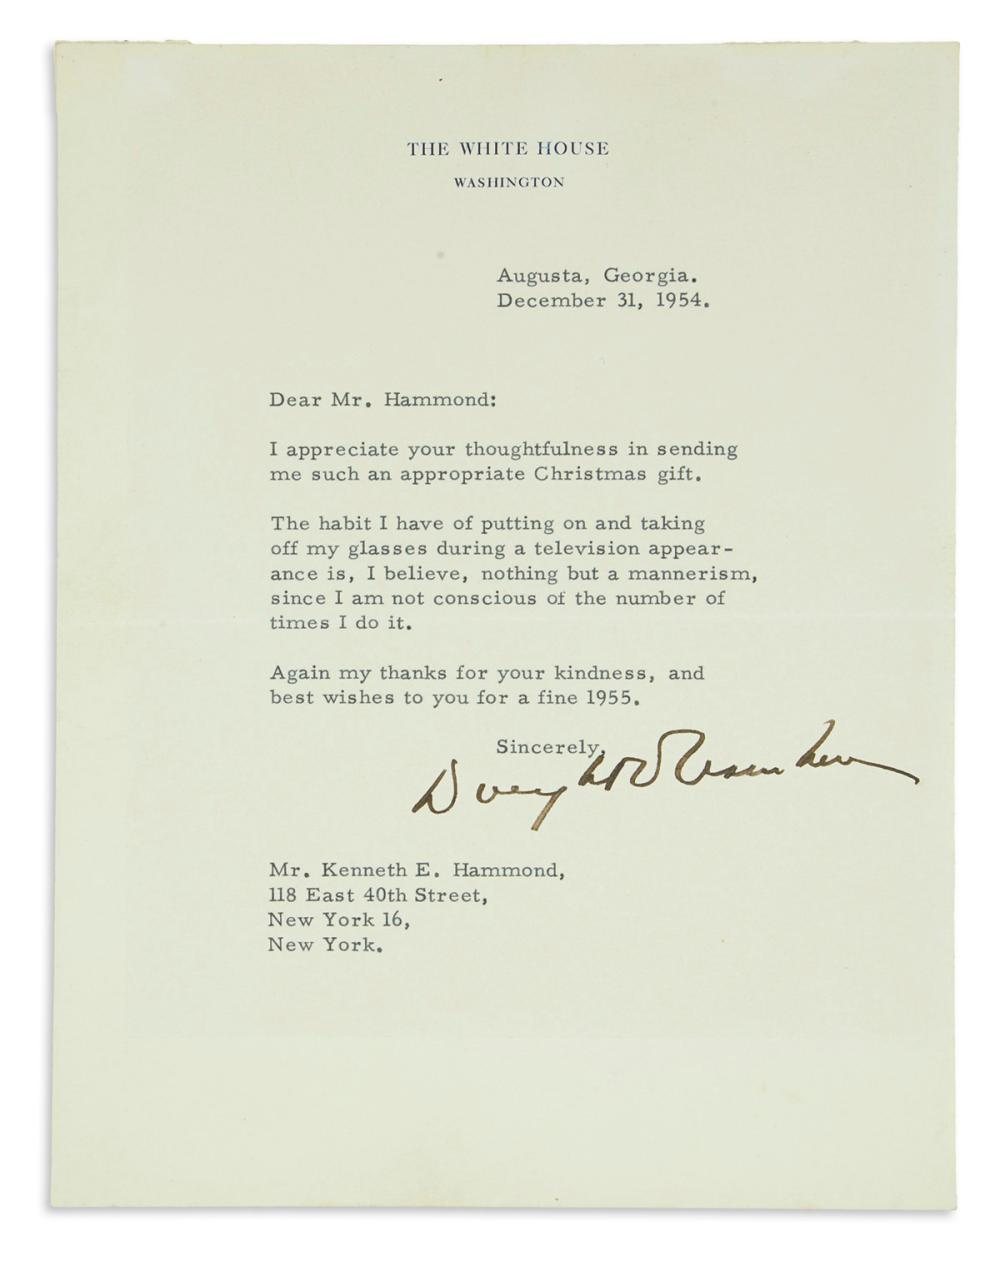 EISENHOWER, DWIGHT D. Typed Letter Signed, as President, to Kenneth E. Hammond,